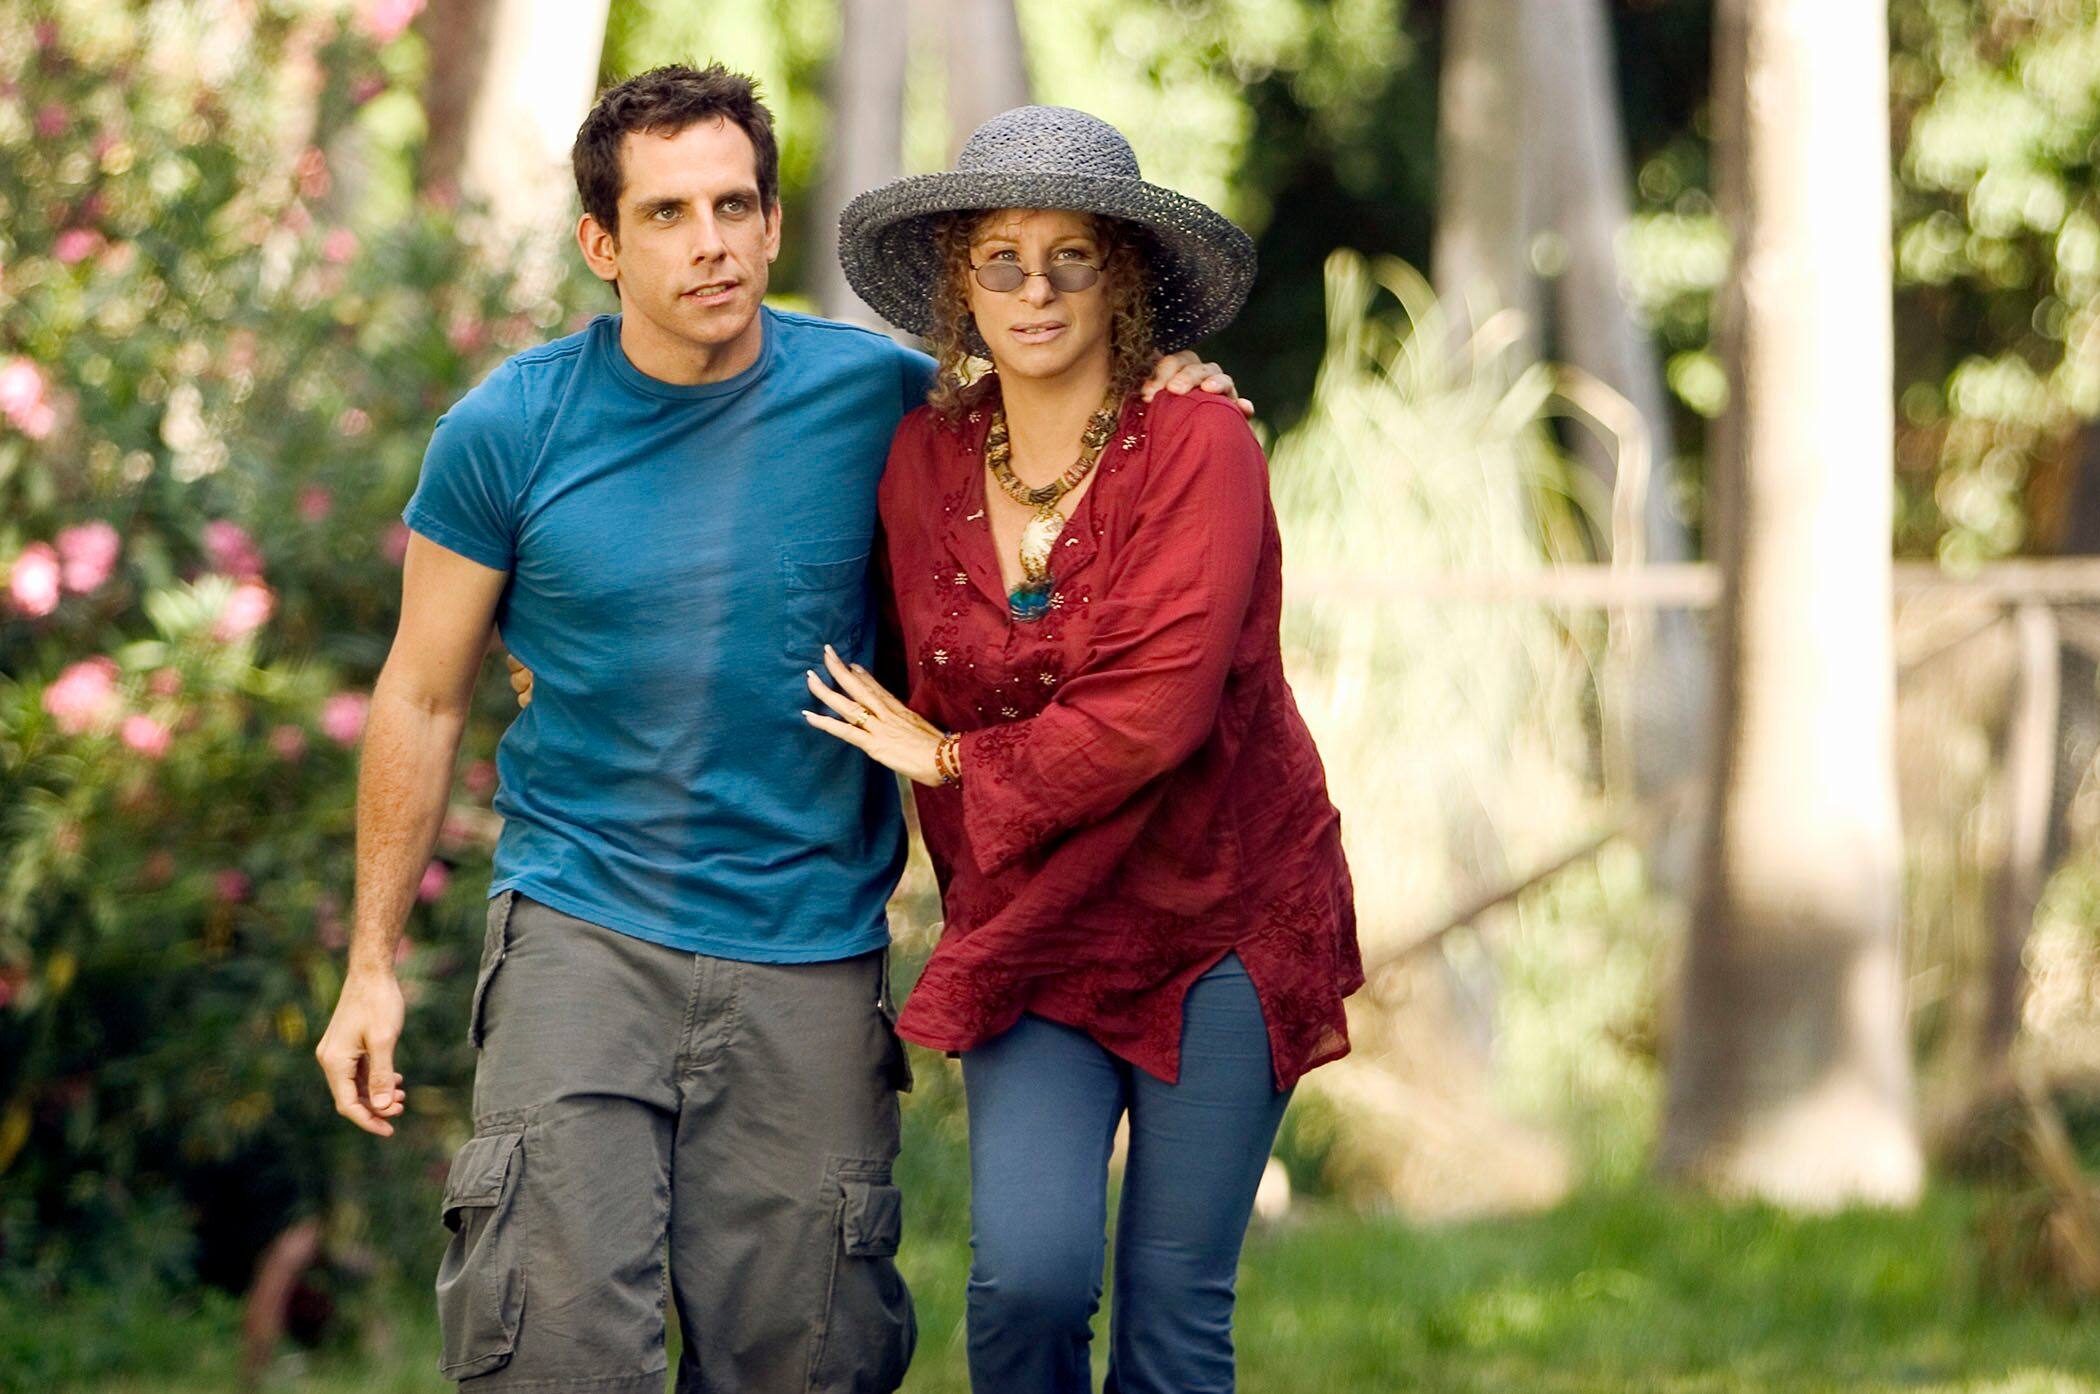 Barbra Streisand and Ben Stiller